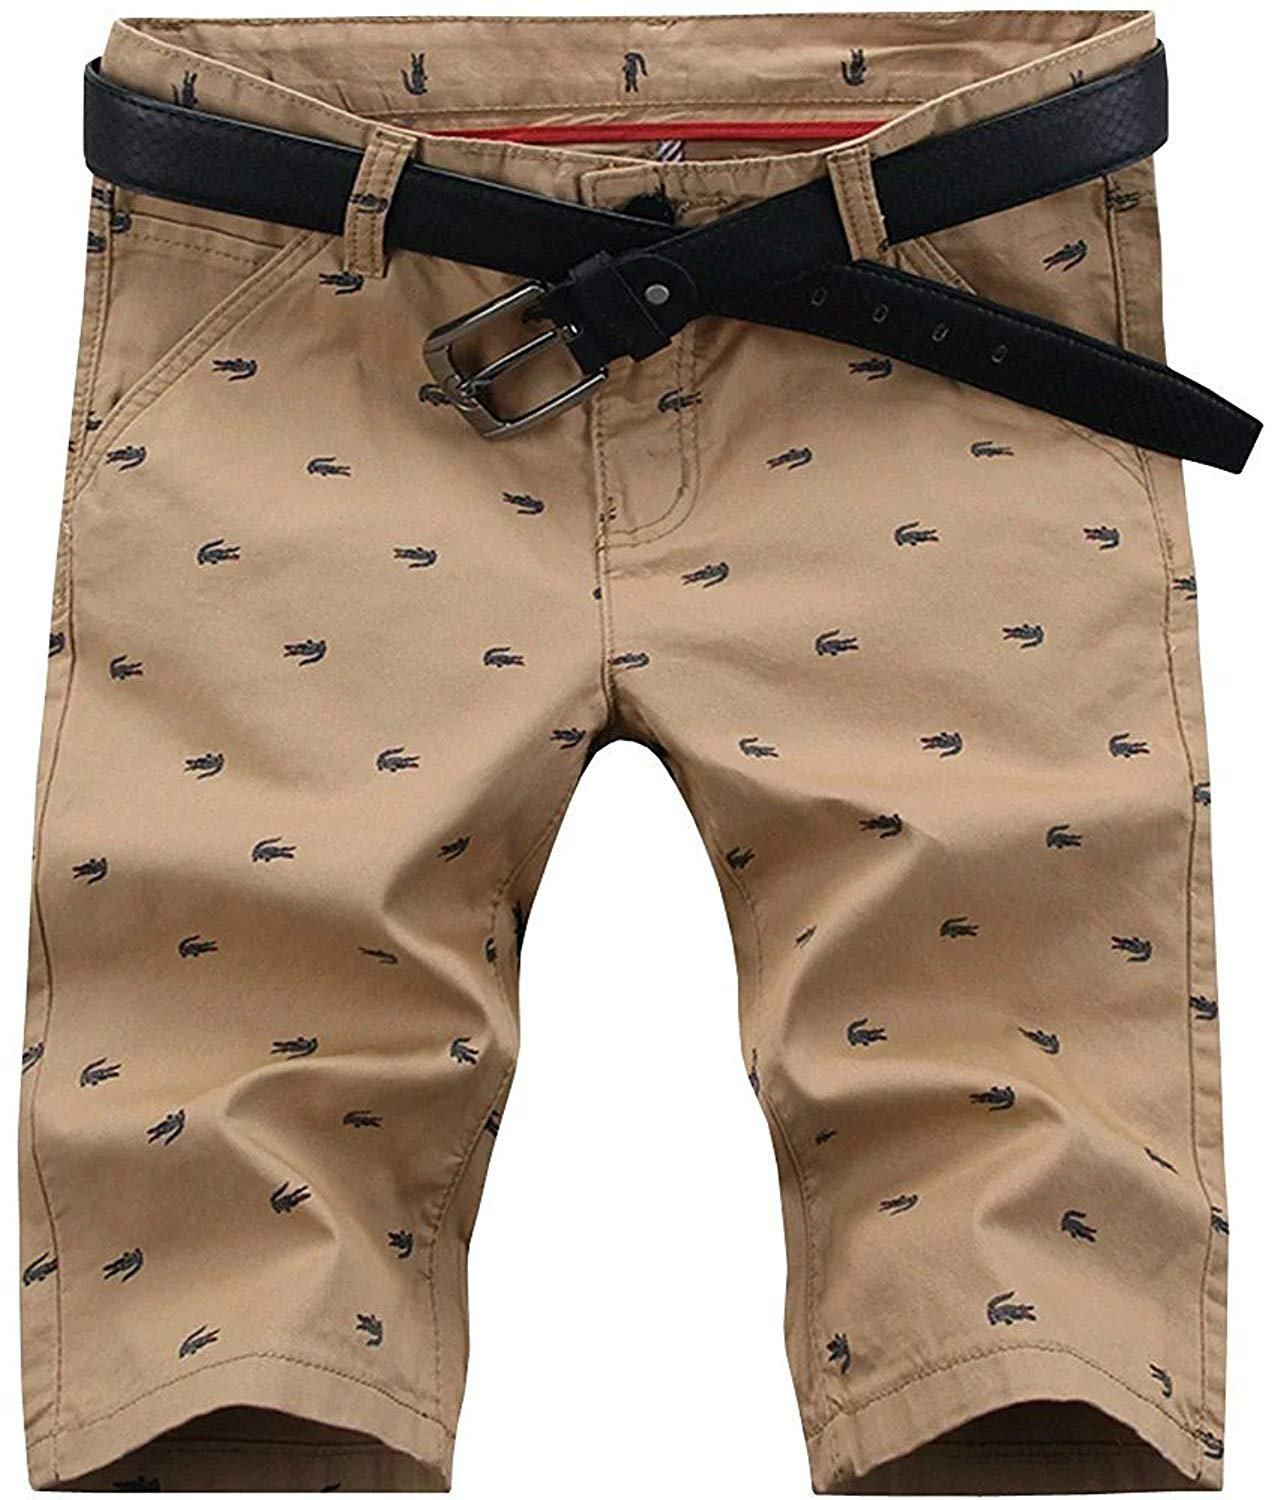 HENGAO Men's Casual Classic Fit Bermuda Chino Flat Front Shorts, Khaki, US 34 = Tag 36 by HENGAO